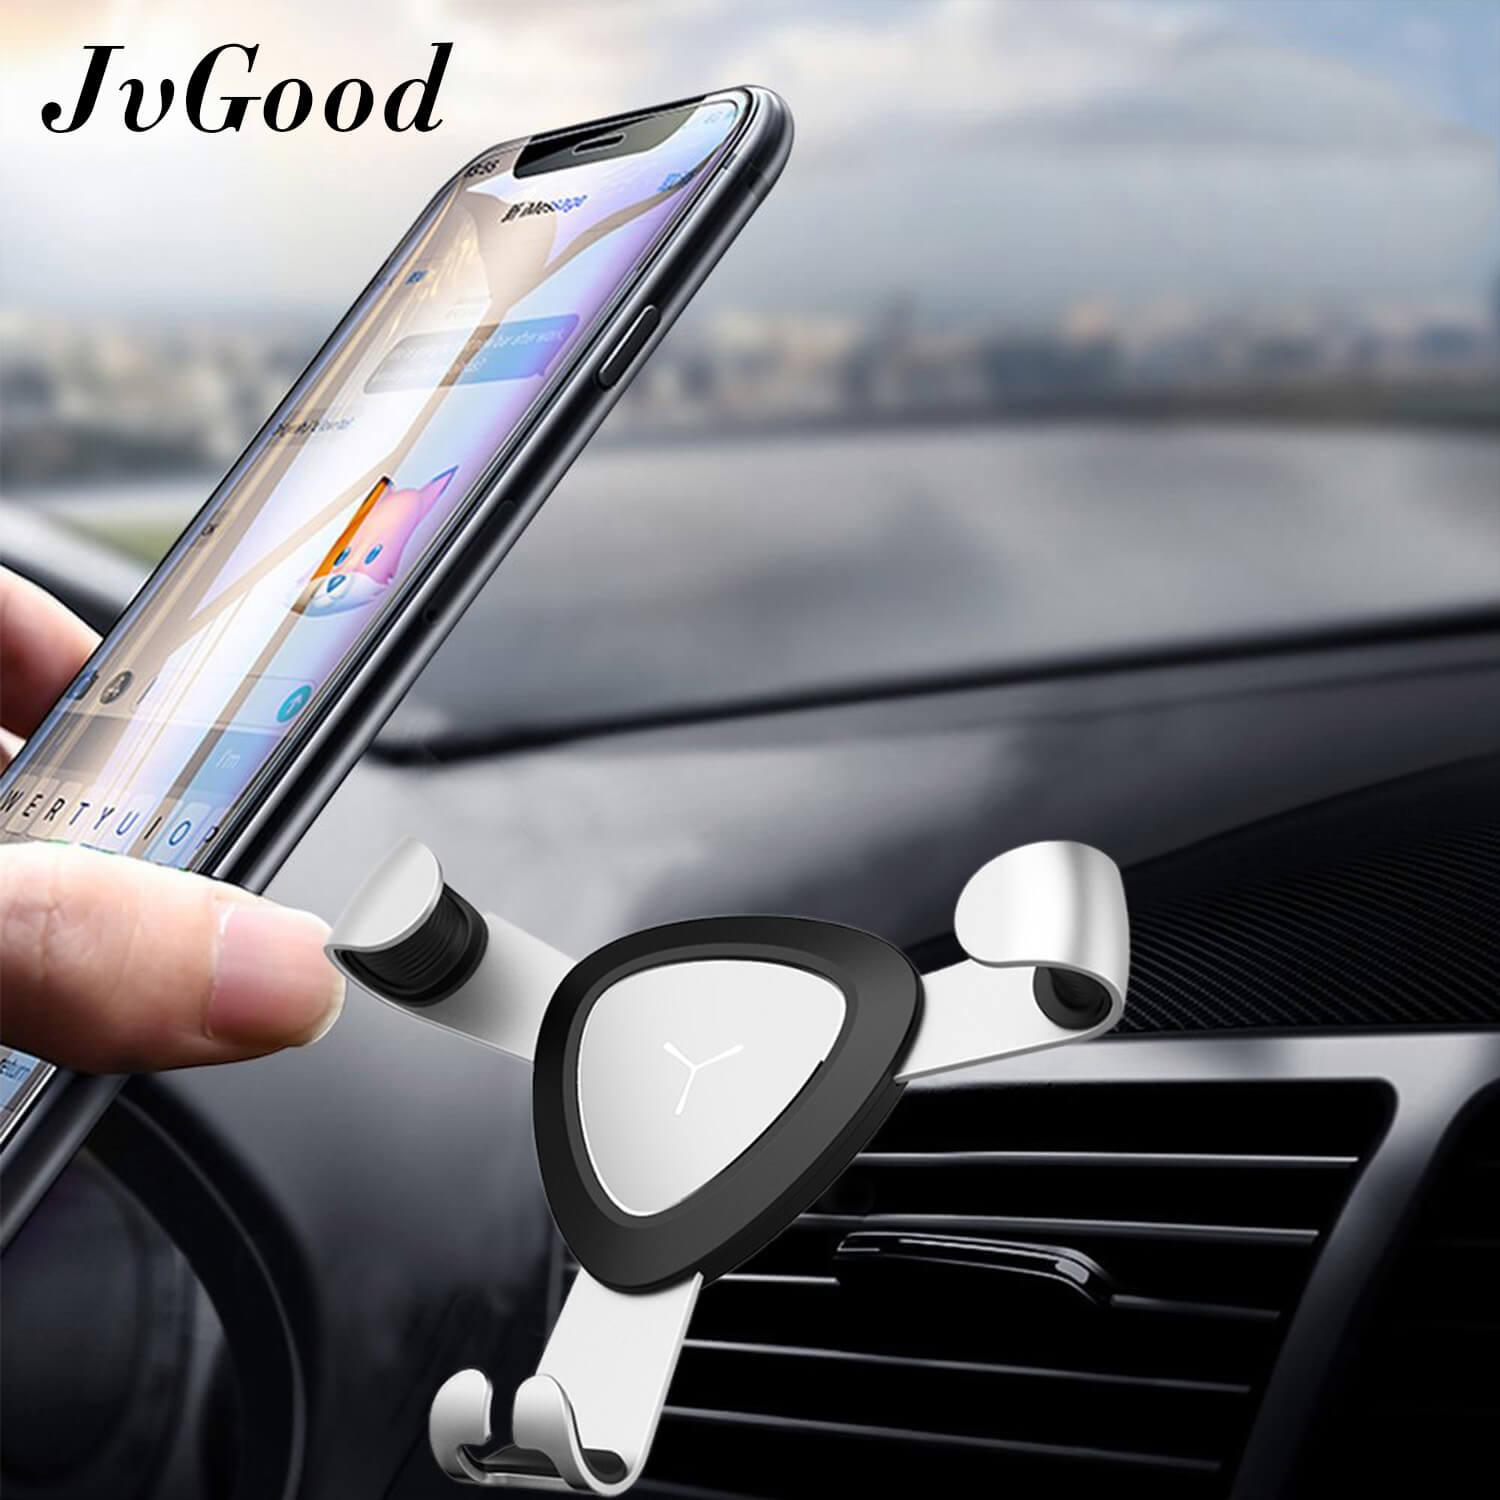 JvGood Air Vent Car mount Gravity Phone Holder for Car Mount Holder Stand Bracket Air Vent Phone Holder Cradle Universal Auto-clamping Auto Lock One-handed Design